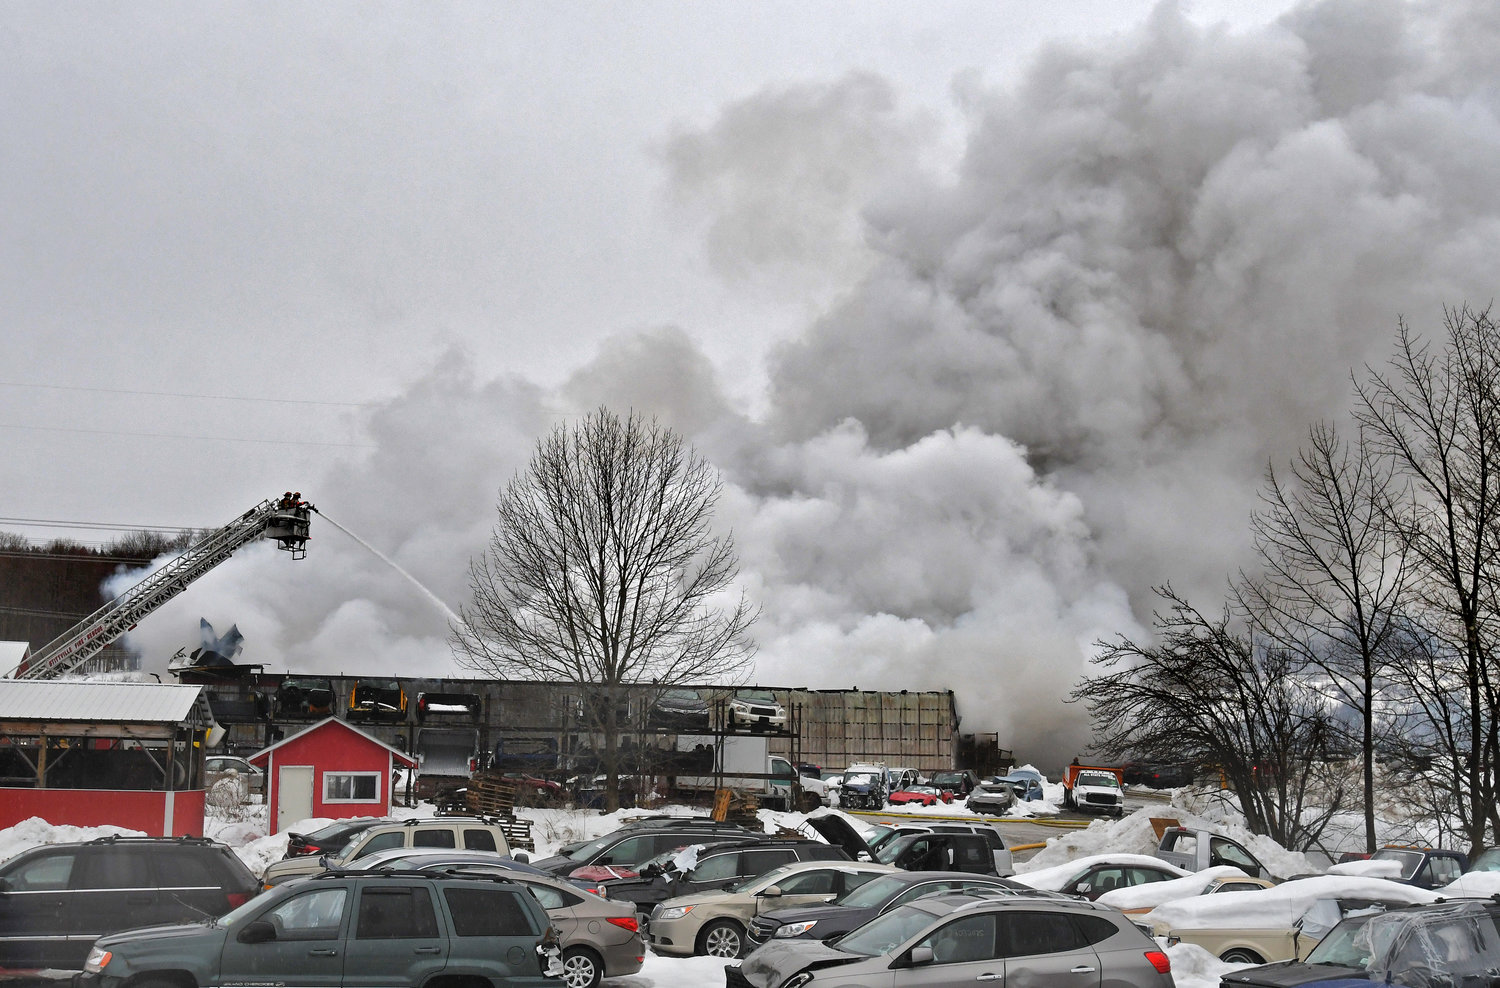 THREE GARAGES LOST — Heavy smoke billows into the air as a Stittville ladder truck blasts water down into a large fire at Tolpa's Auto Parts off French Road in Steuben. Fire officials said three workshops were lost in the blaze.